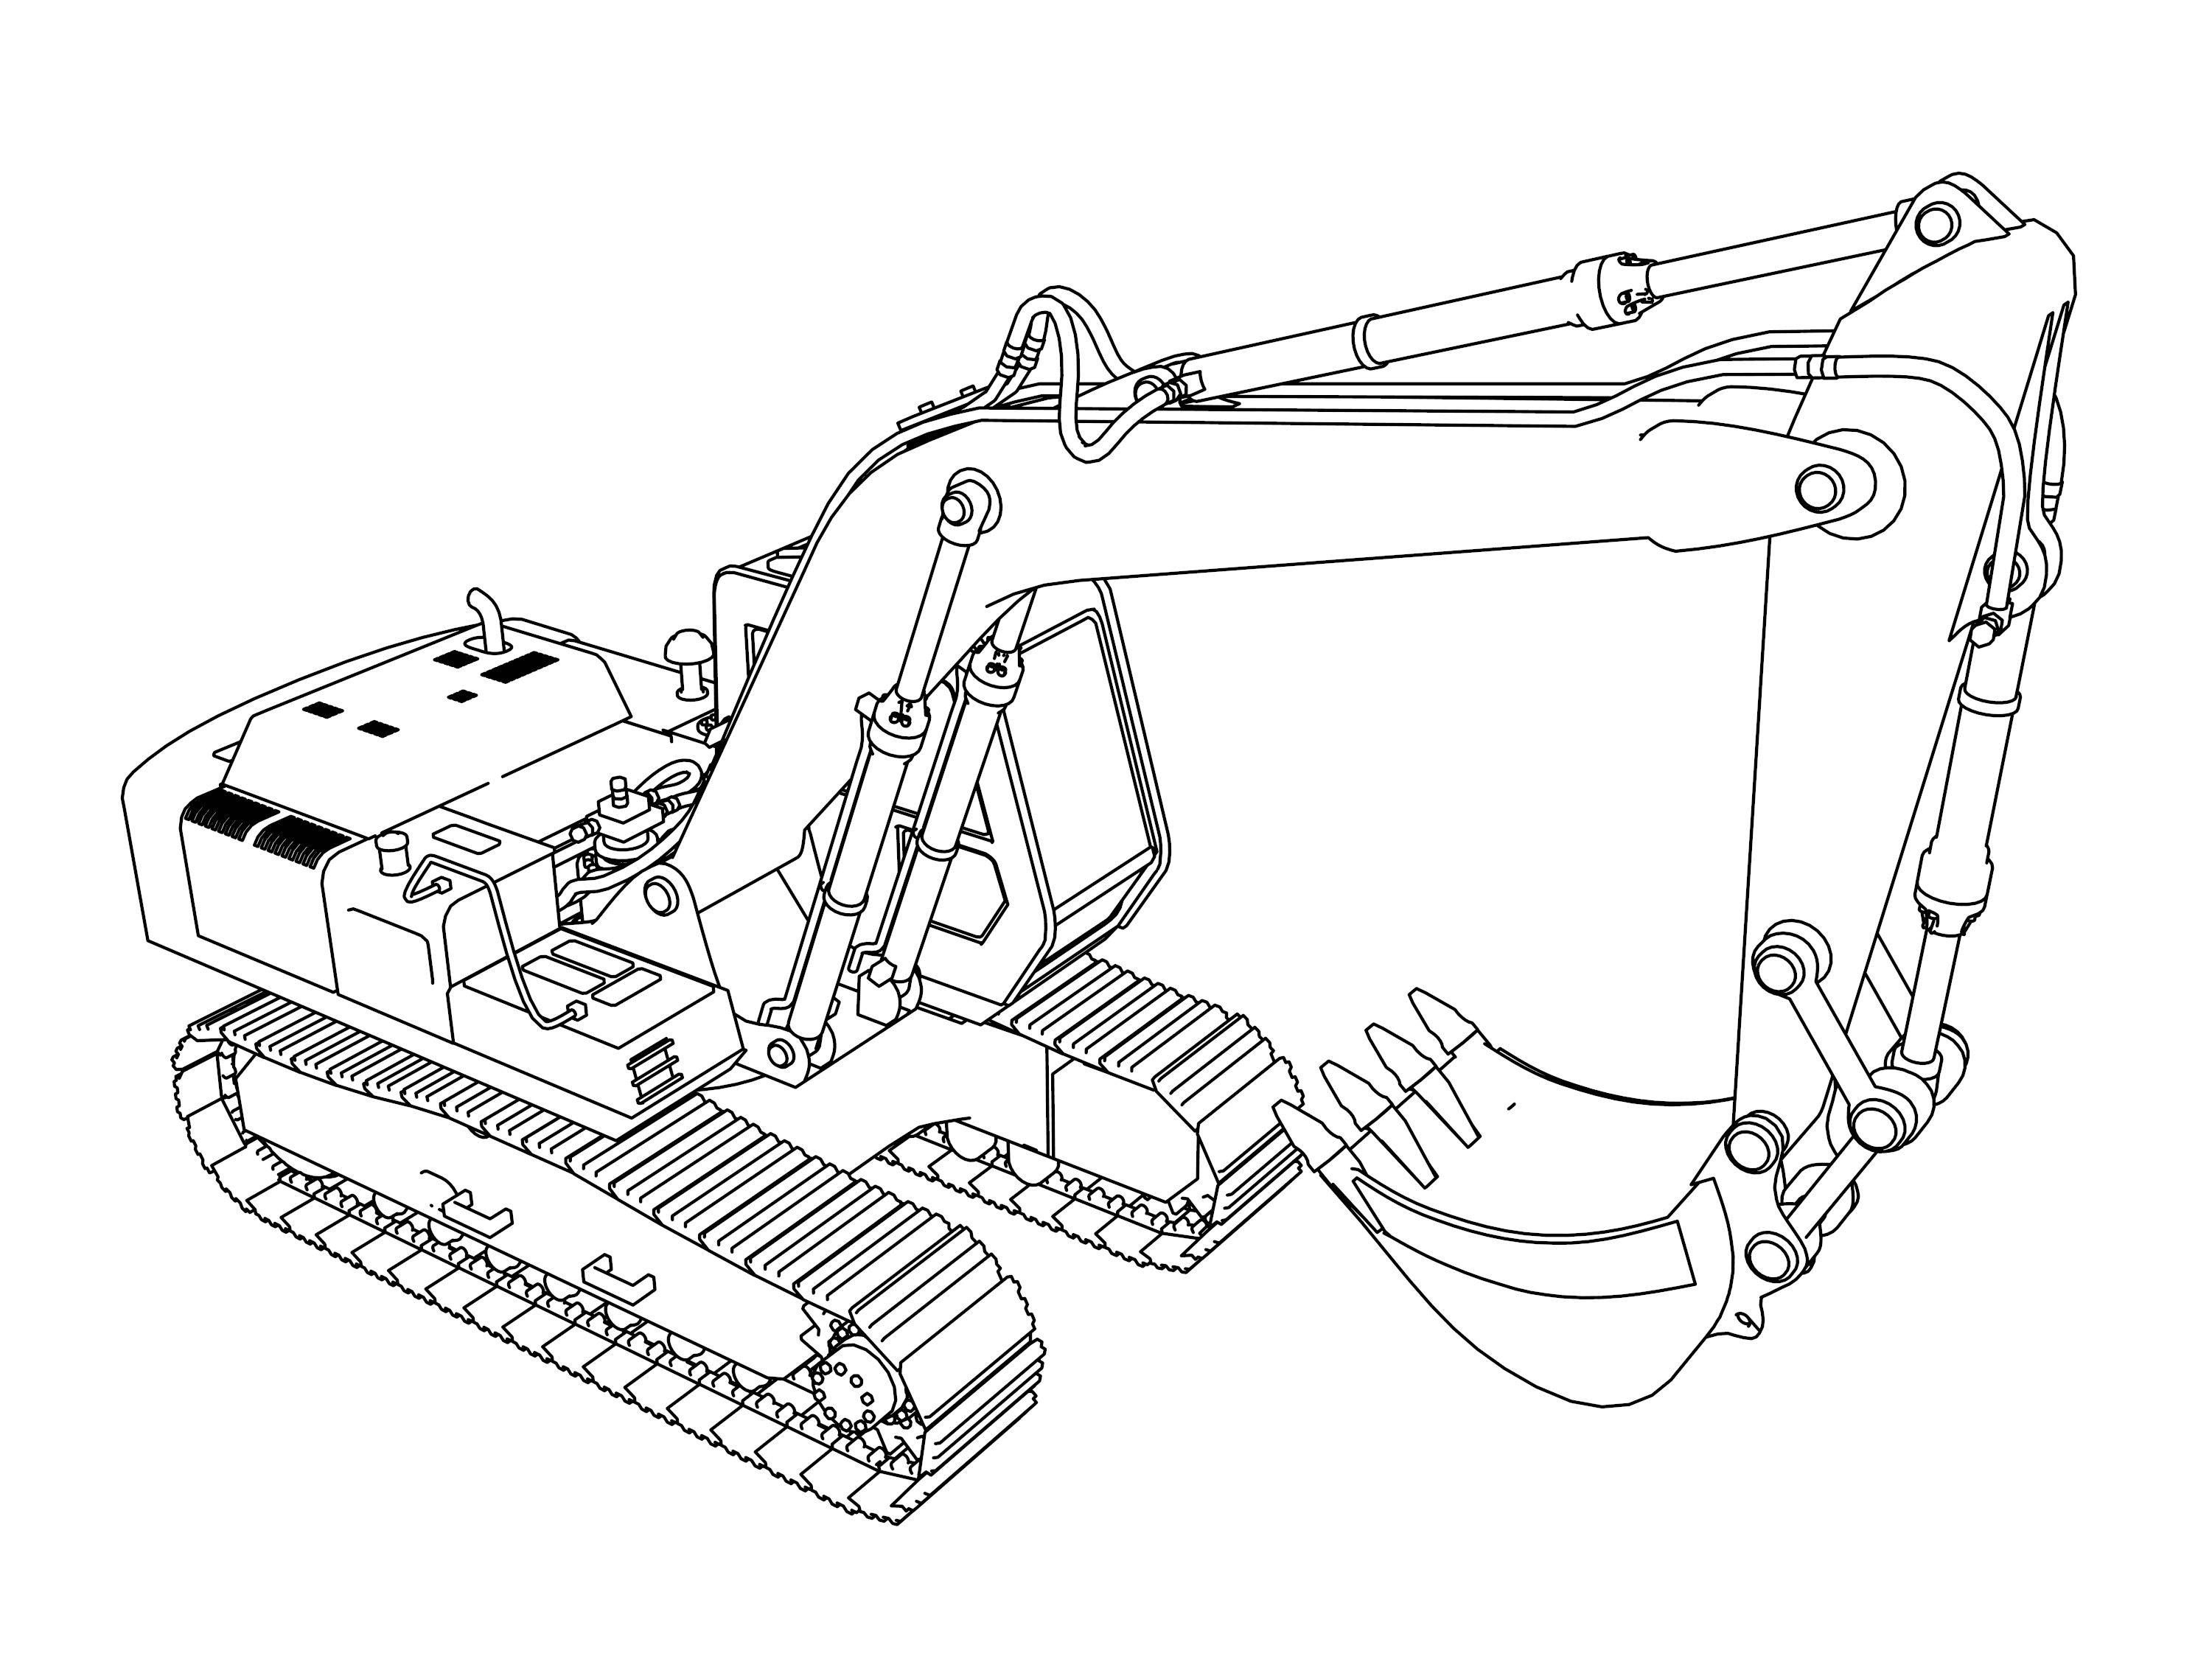 Excavator coloring pages coloring pages pinterest coloring